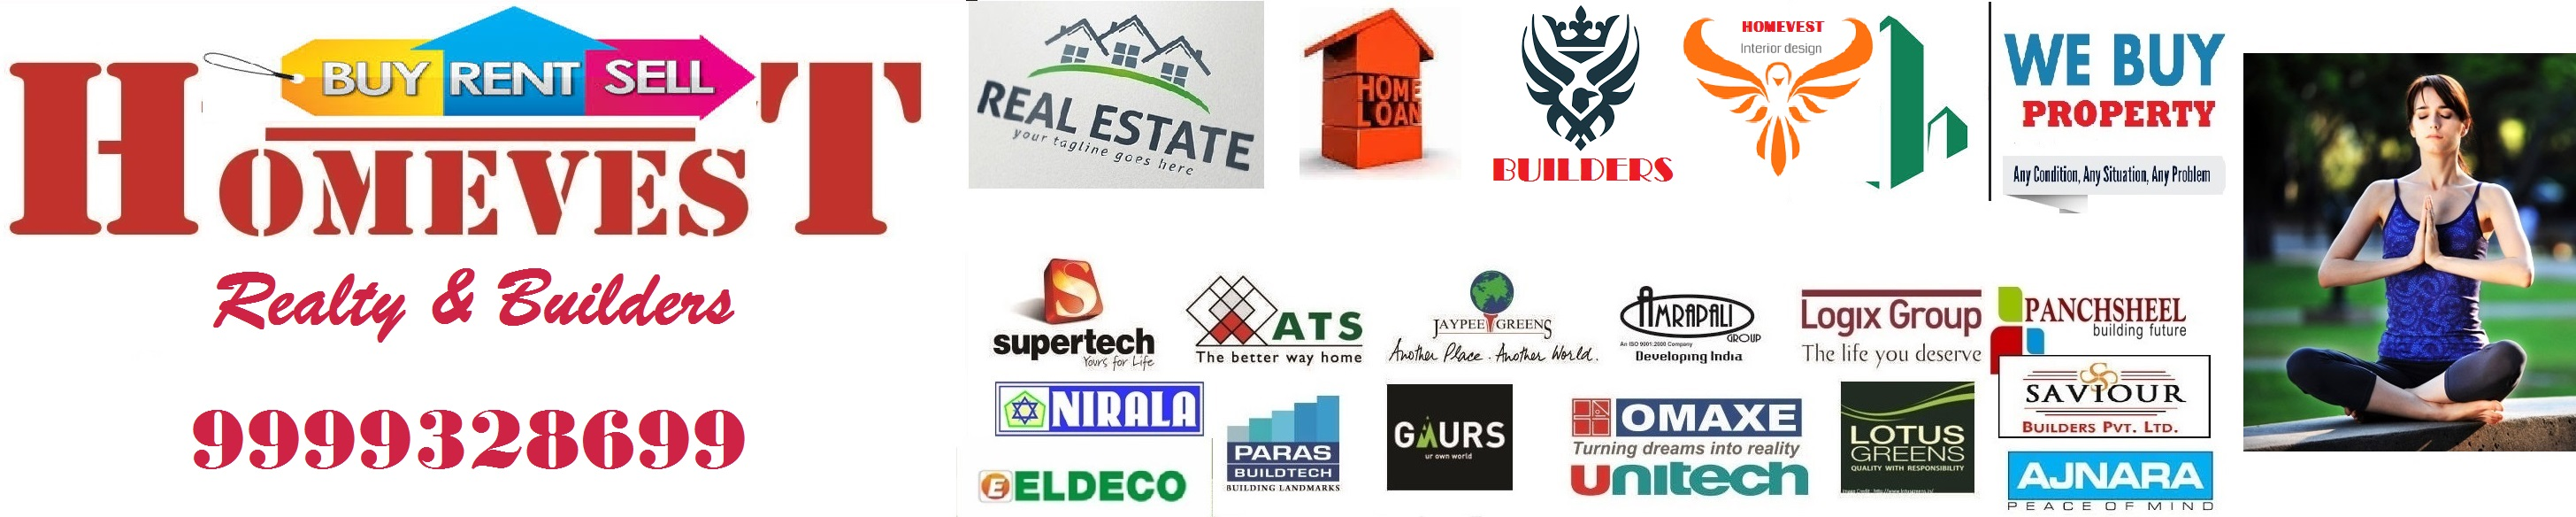 Homevest Group Real Estate Company AFFORDABE HOMES noida,greater noida,yamuna expressway,noida extension,noida expressway,central noida,near metro station,GHAZIABAD,INDIRAPURAM, VASUNDHRA,RAJNAGAR EXTENSION, AFFORDABLE HOUSING, LOAN AVAILABLE